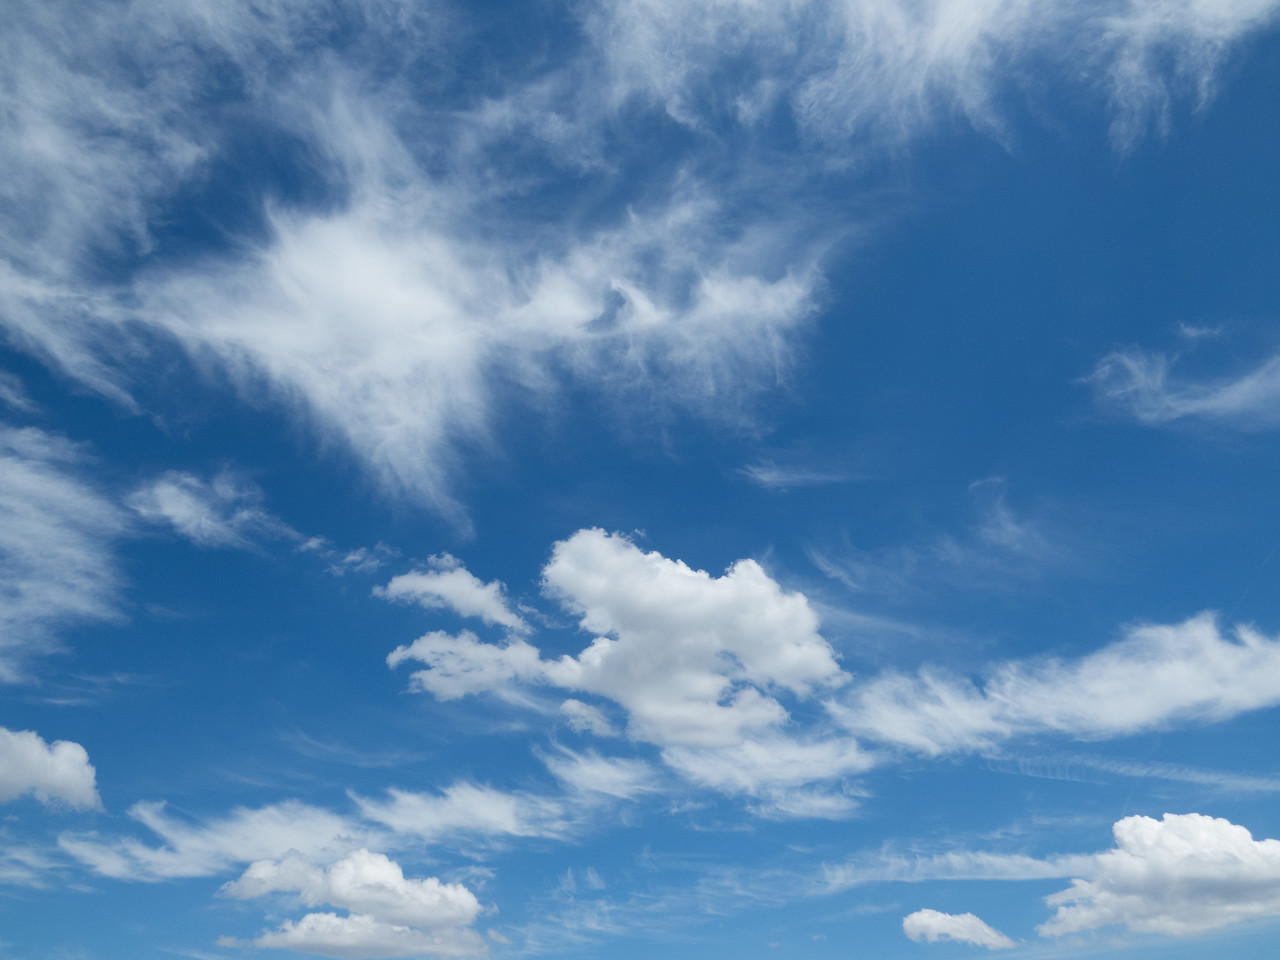 Great clouds for imagining